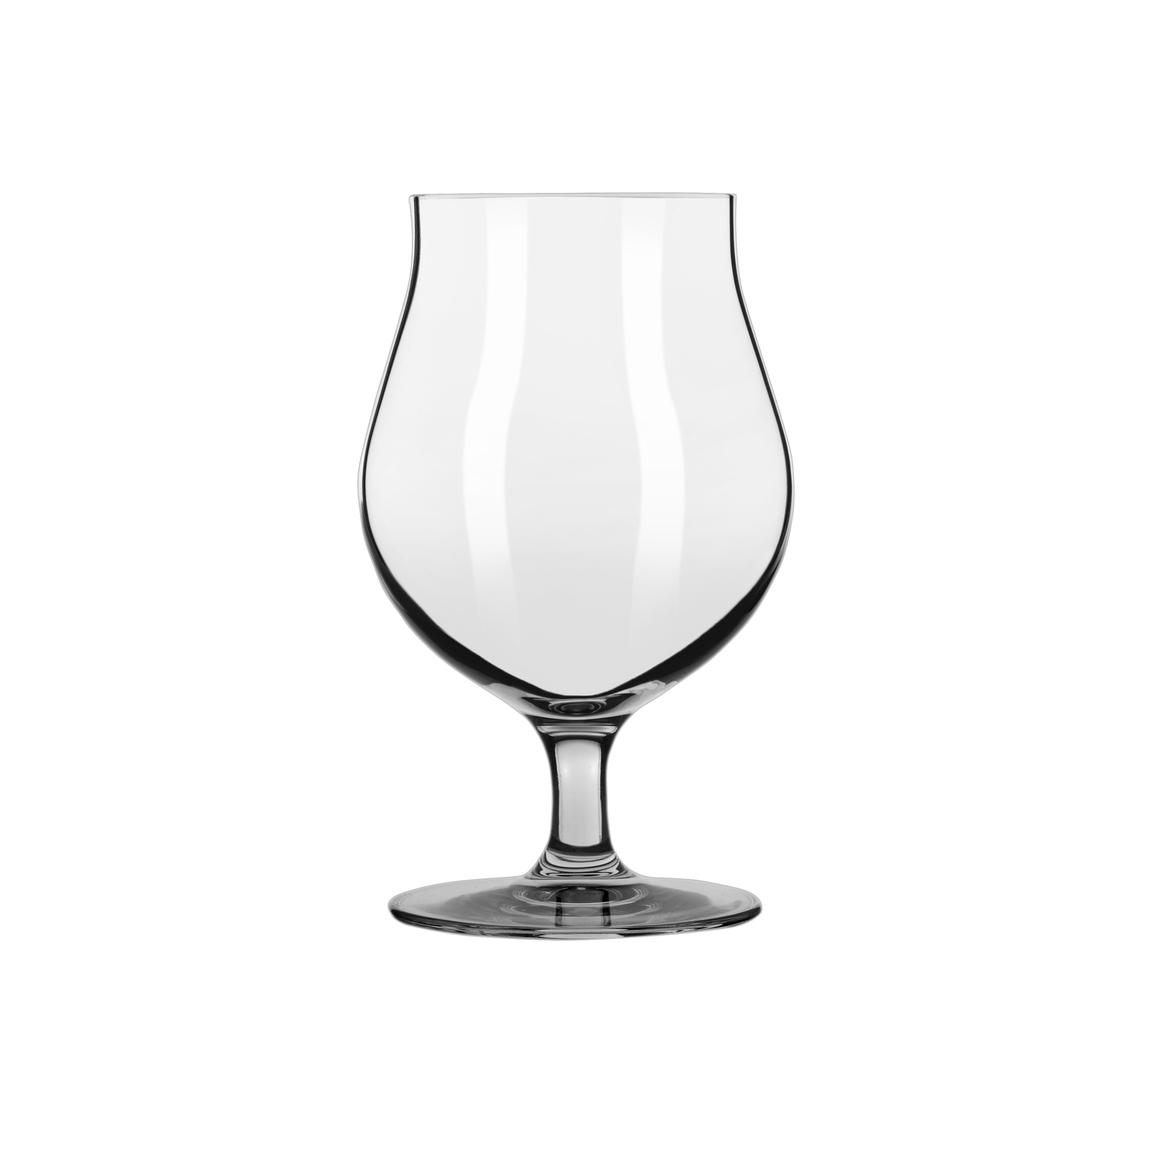 Libbey Glass 9169 glass, beer